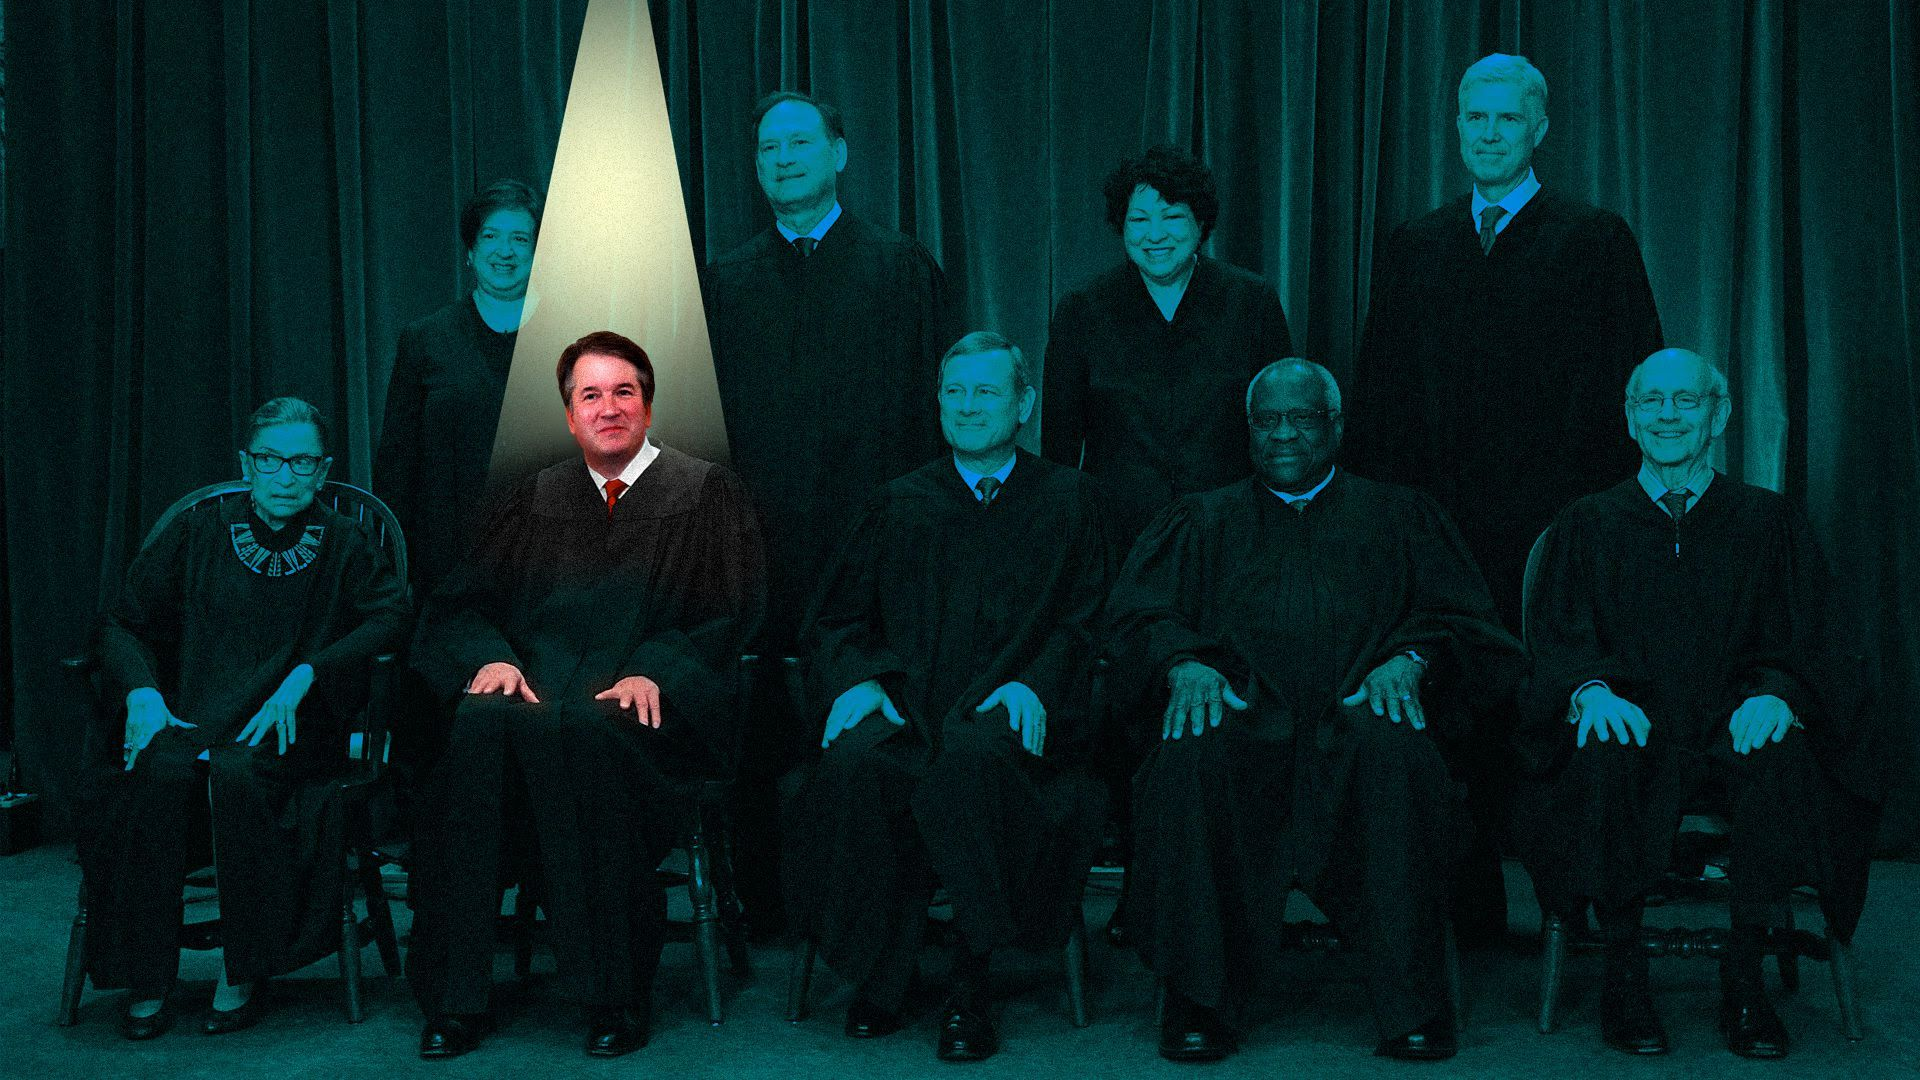 Kavanaugh in the spotlight in Supreme Court photo